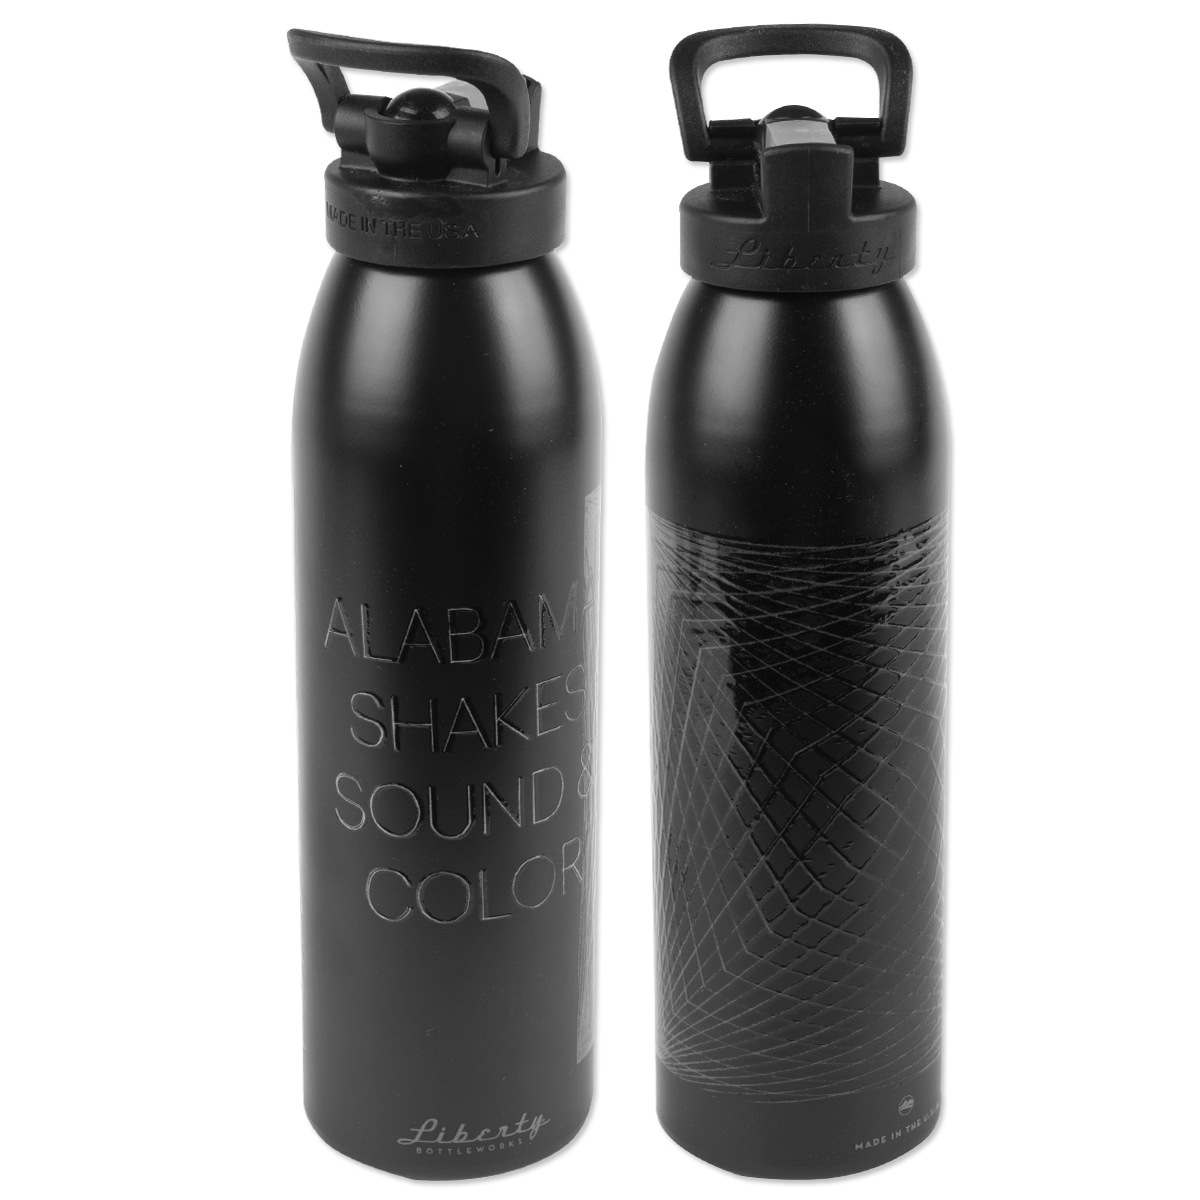 Sound and Color Water Bottle